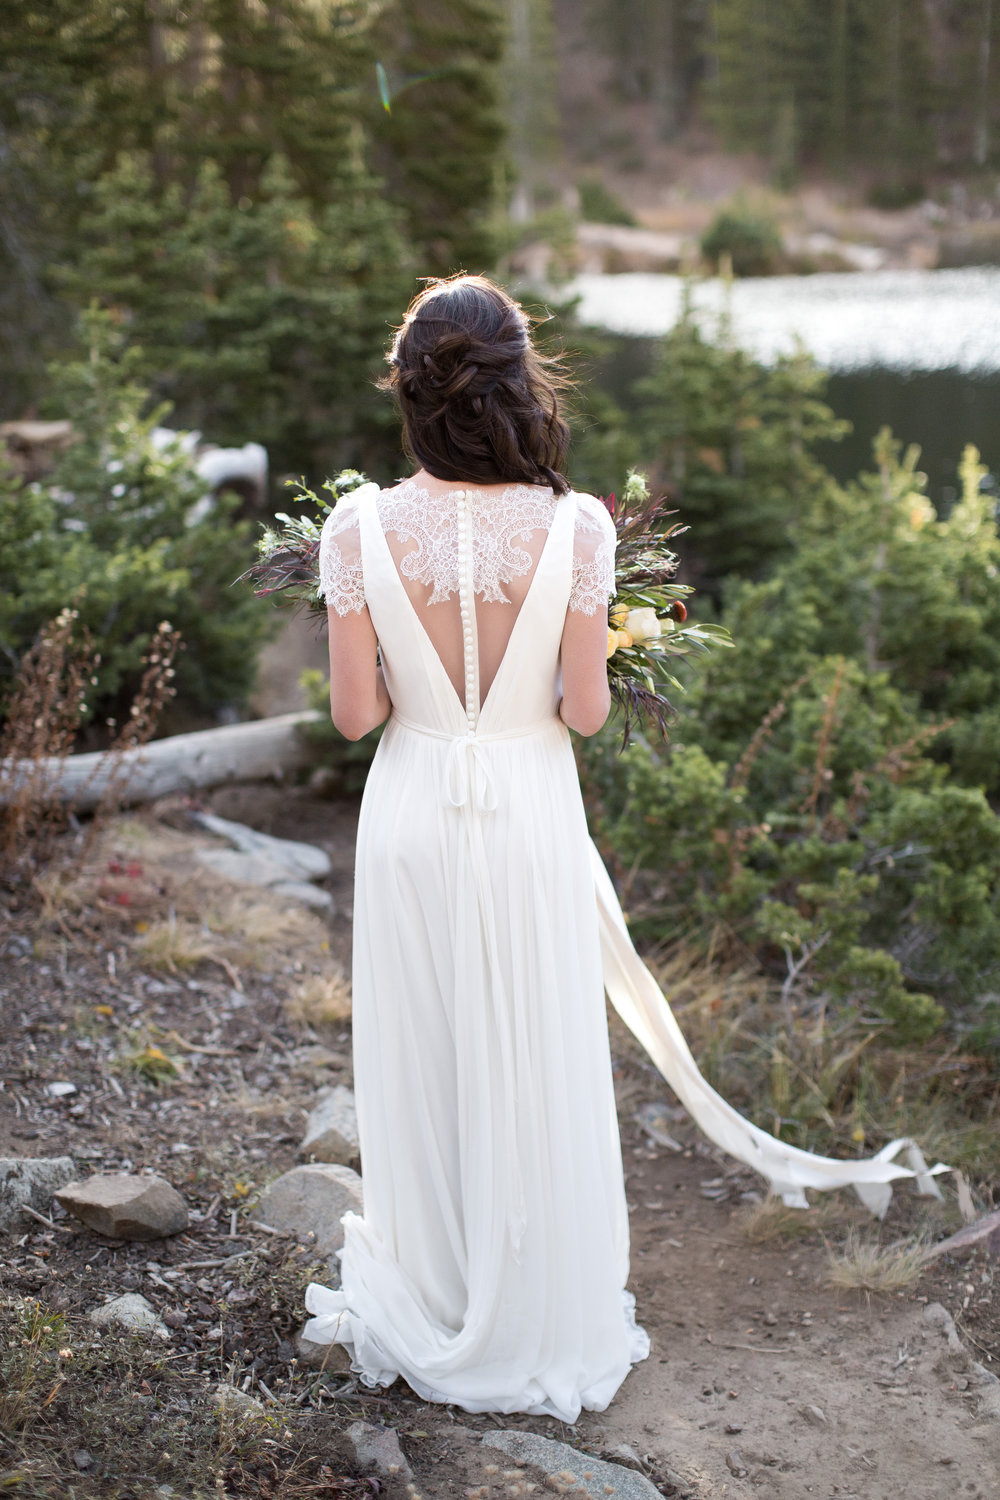 UtahValleyBrideShootTR2016 (107 of 110).jpg